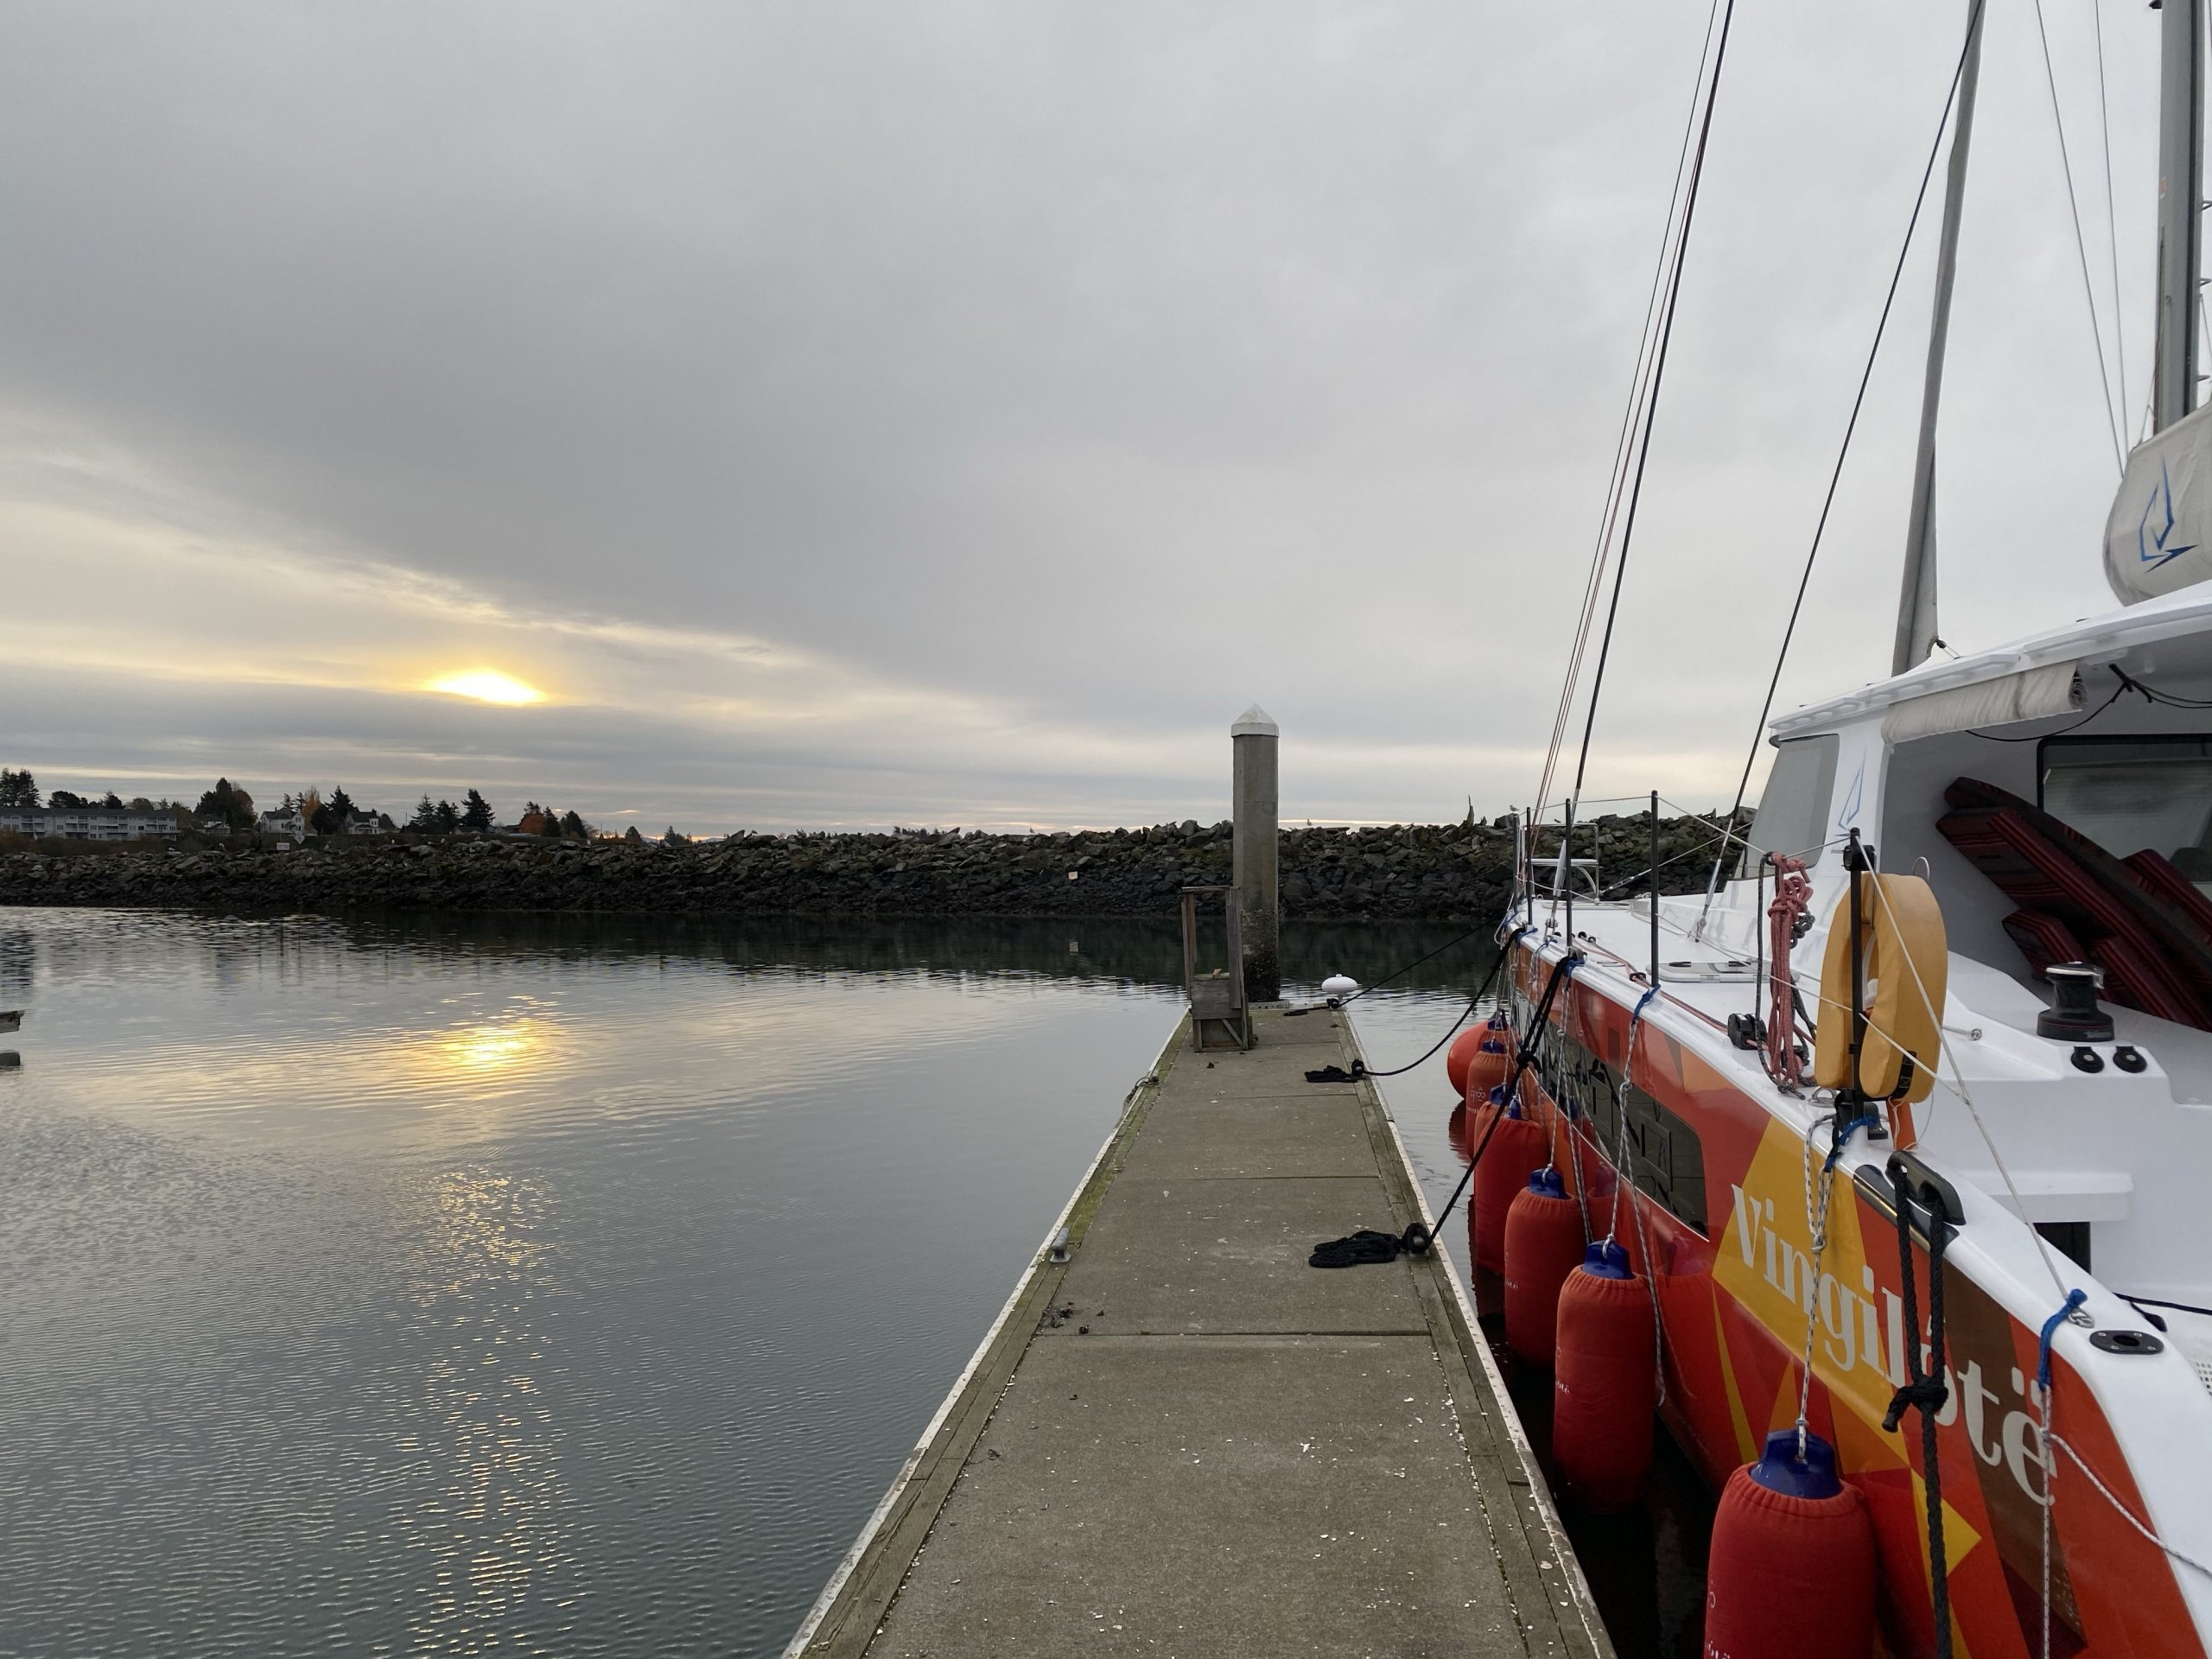 A Dreary Sunrise on Our Last Day Onboard